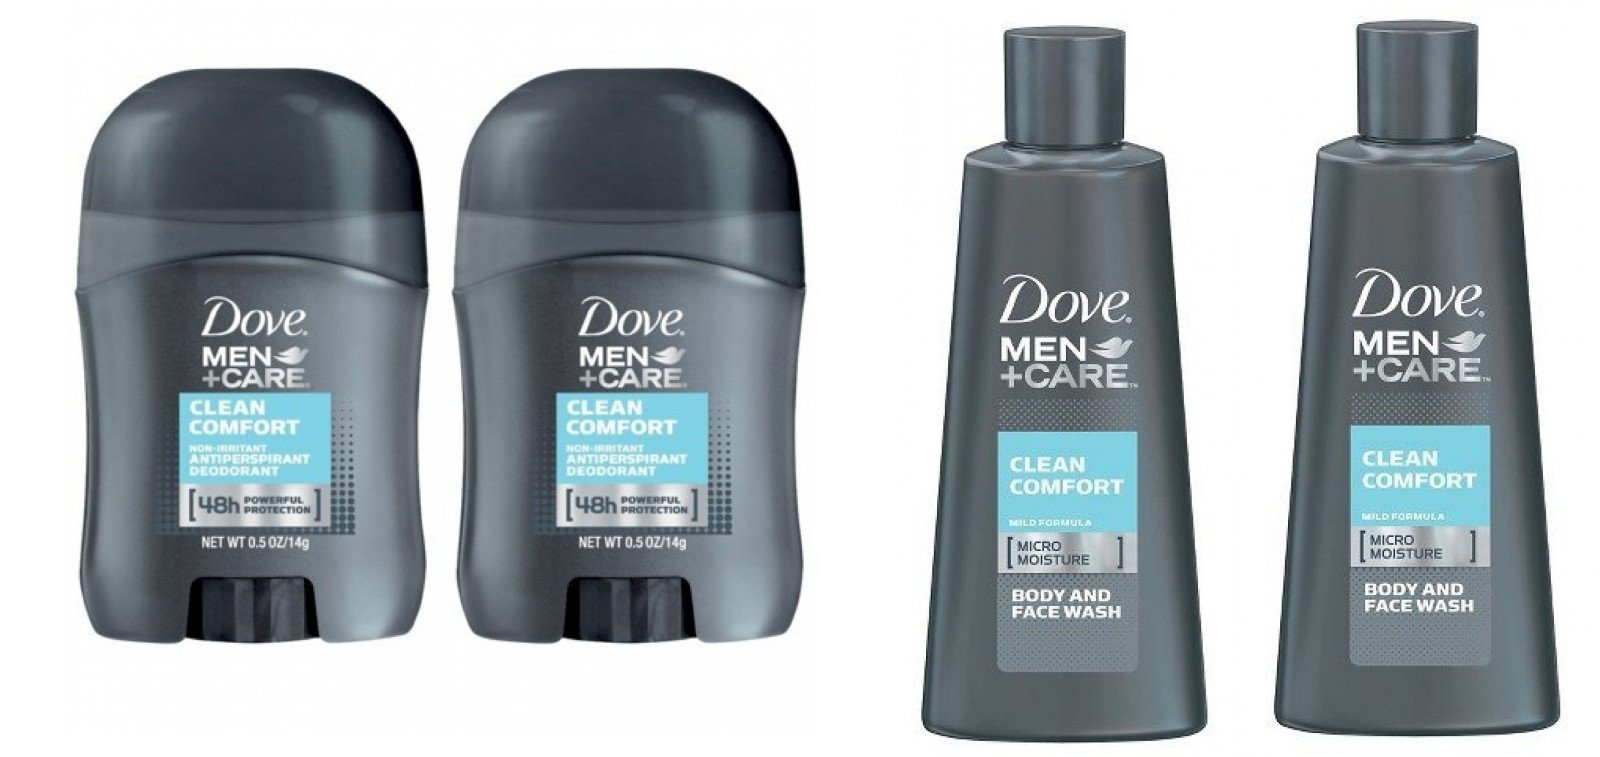 Dove Men + Care Clean Comfort Micro Moisture Mild Body and Face Wash Travel Size 3 Oz (Pack of 2) + Dove Men+Care Clean Comfort Anti-Perspirant Deodorant Travel Size - 0.5 Oz (Pack of 2)